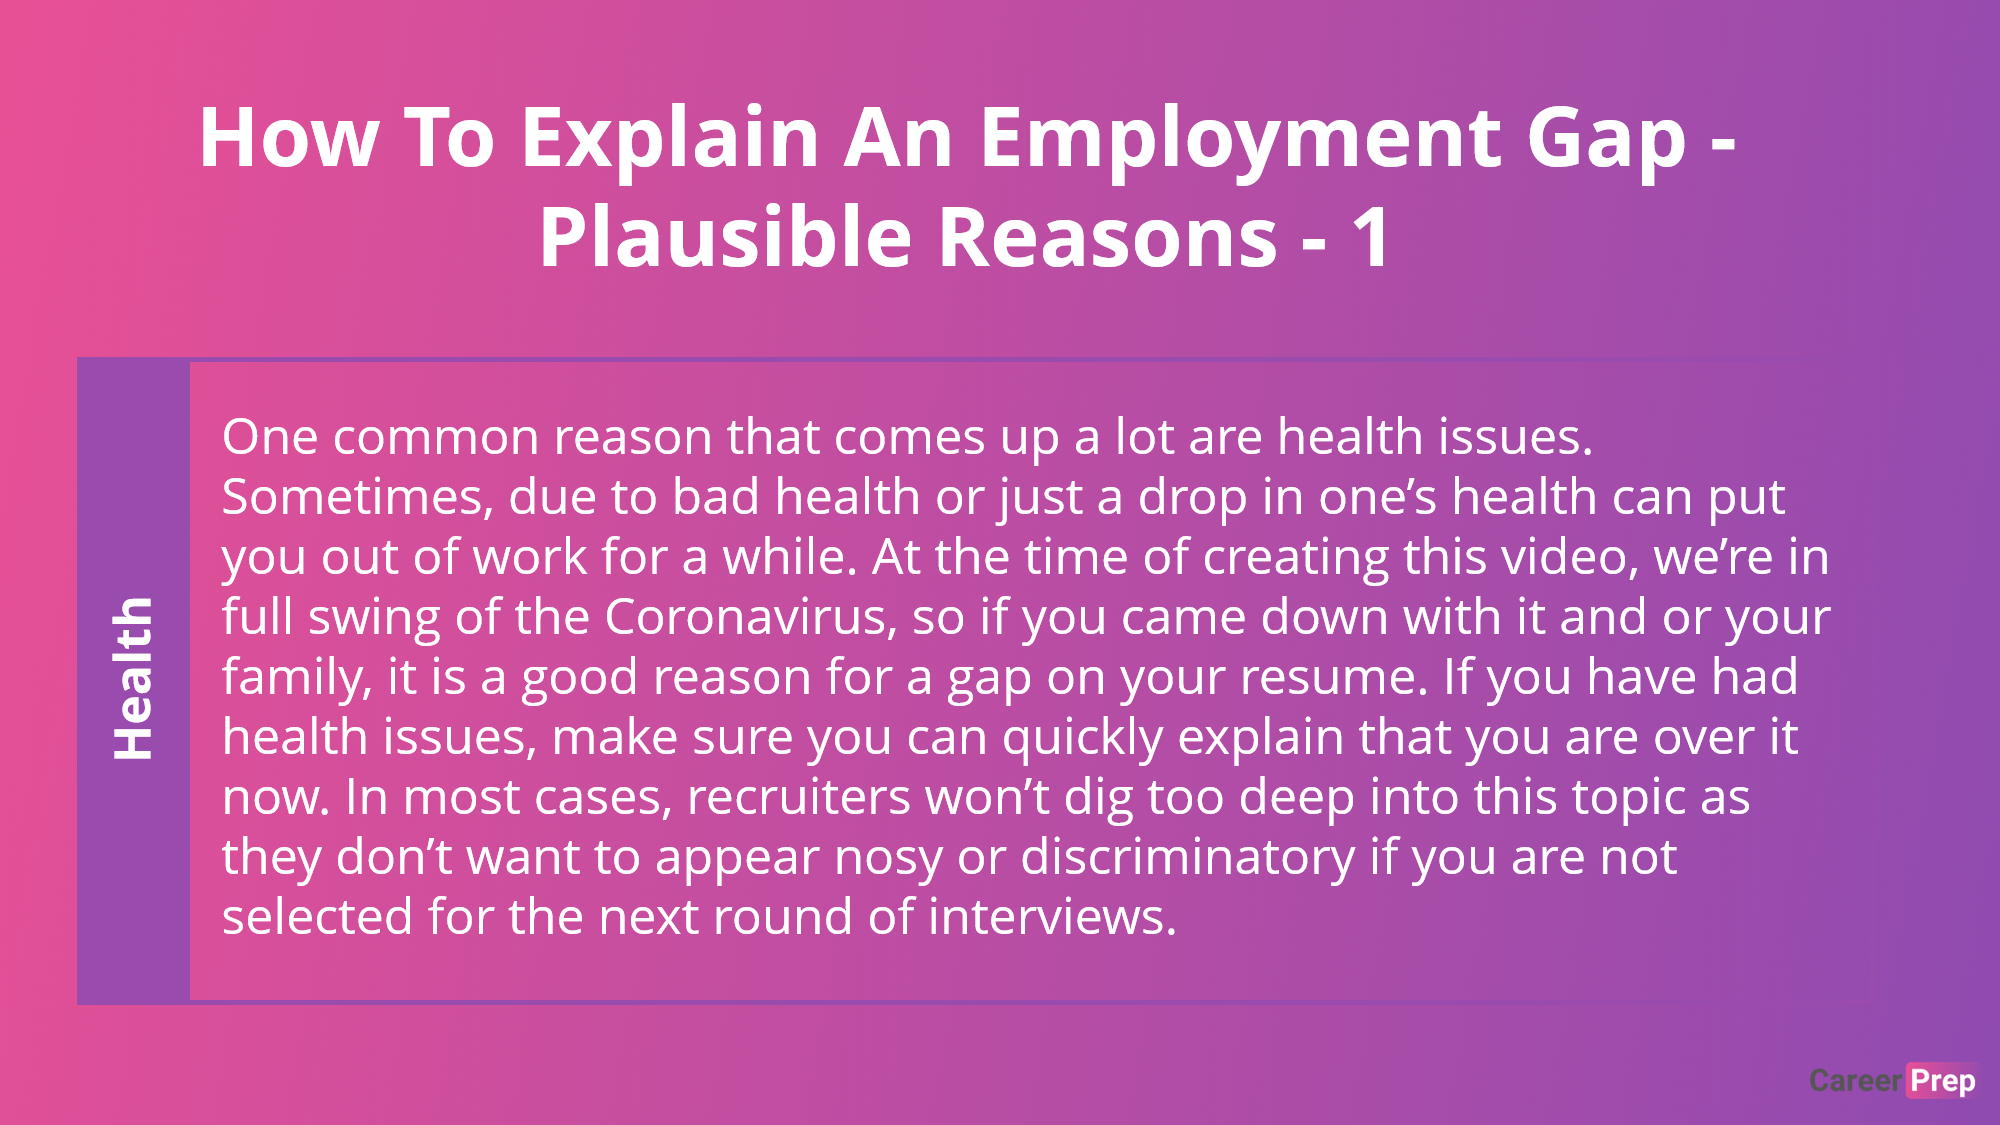 explaining an employment gap because of a health related issue